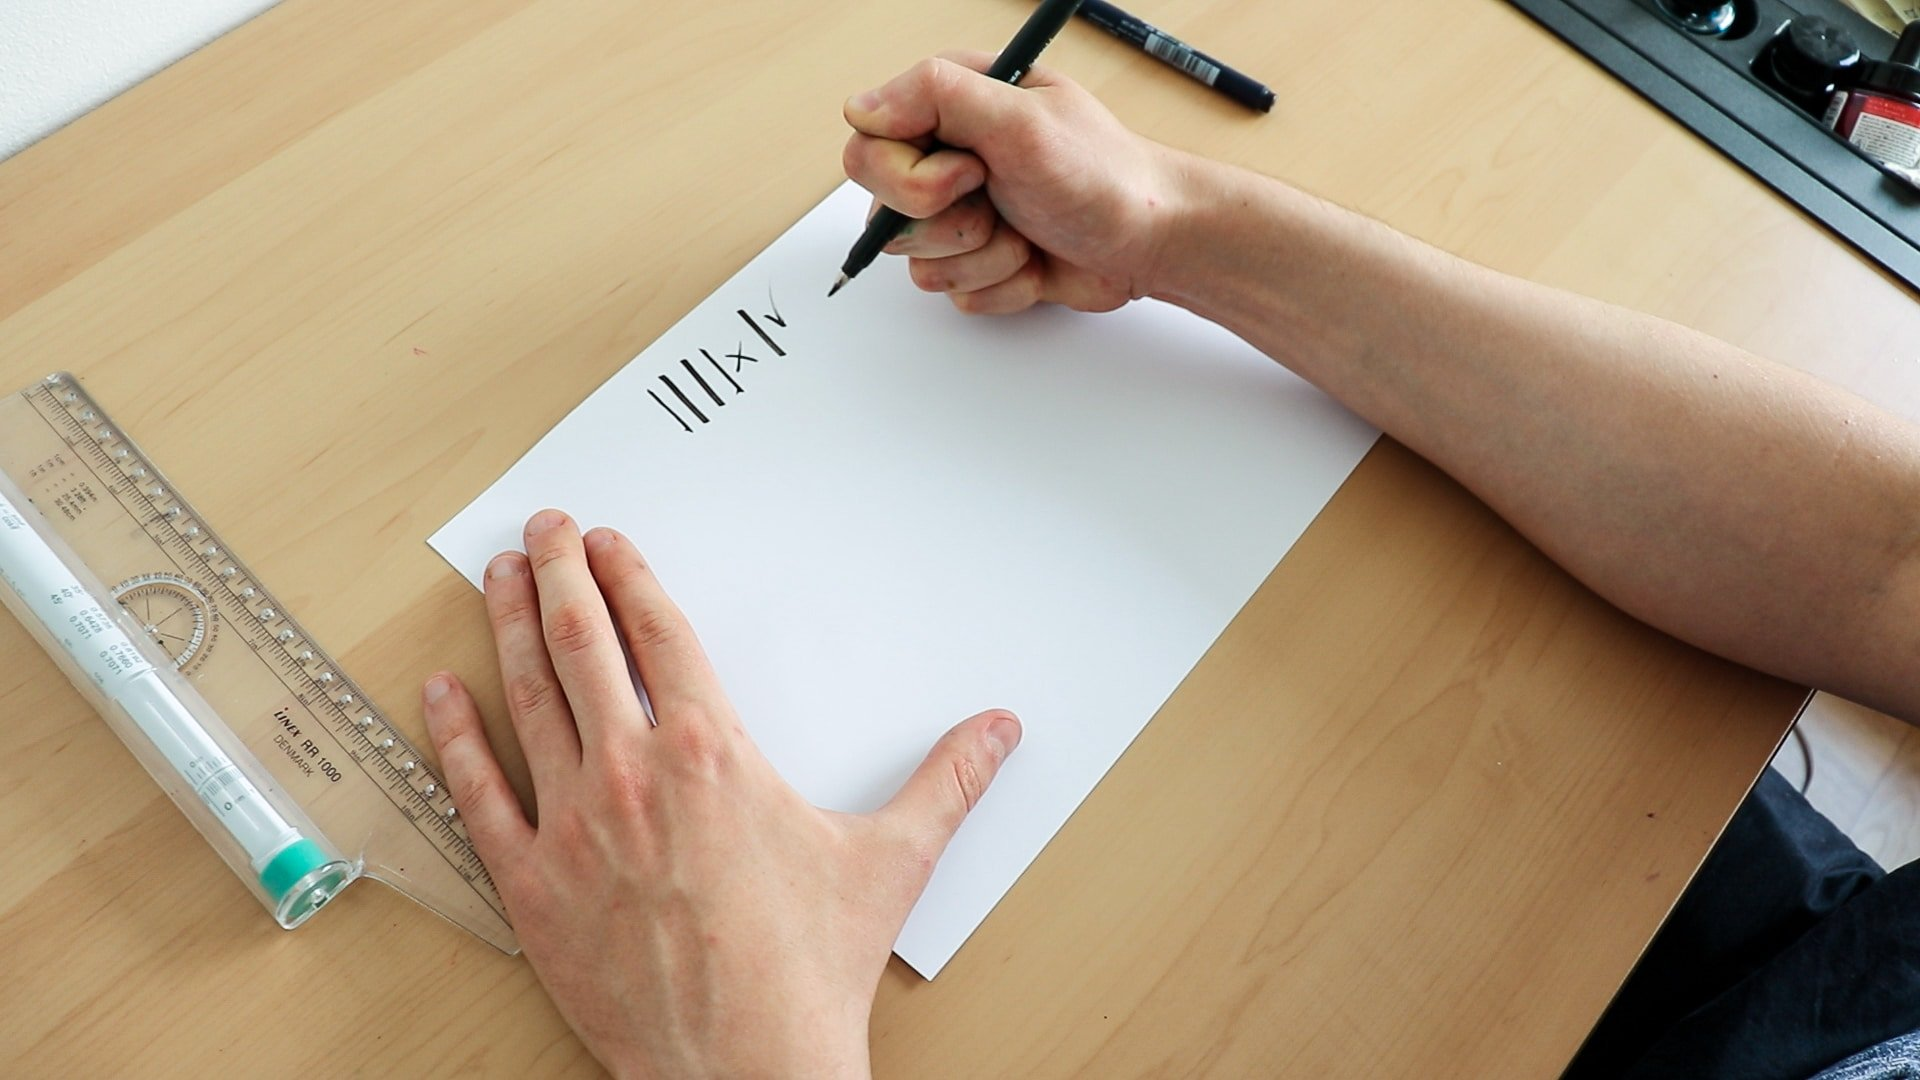 Holding the brush pen in a fist-like position